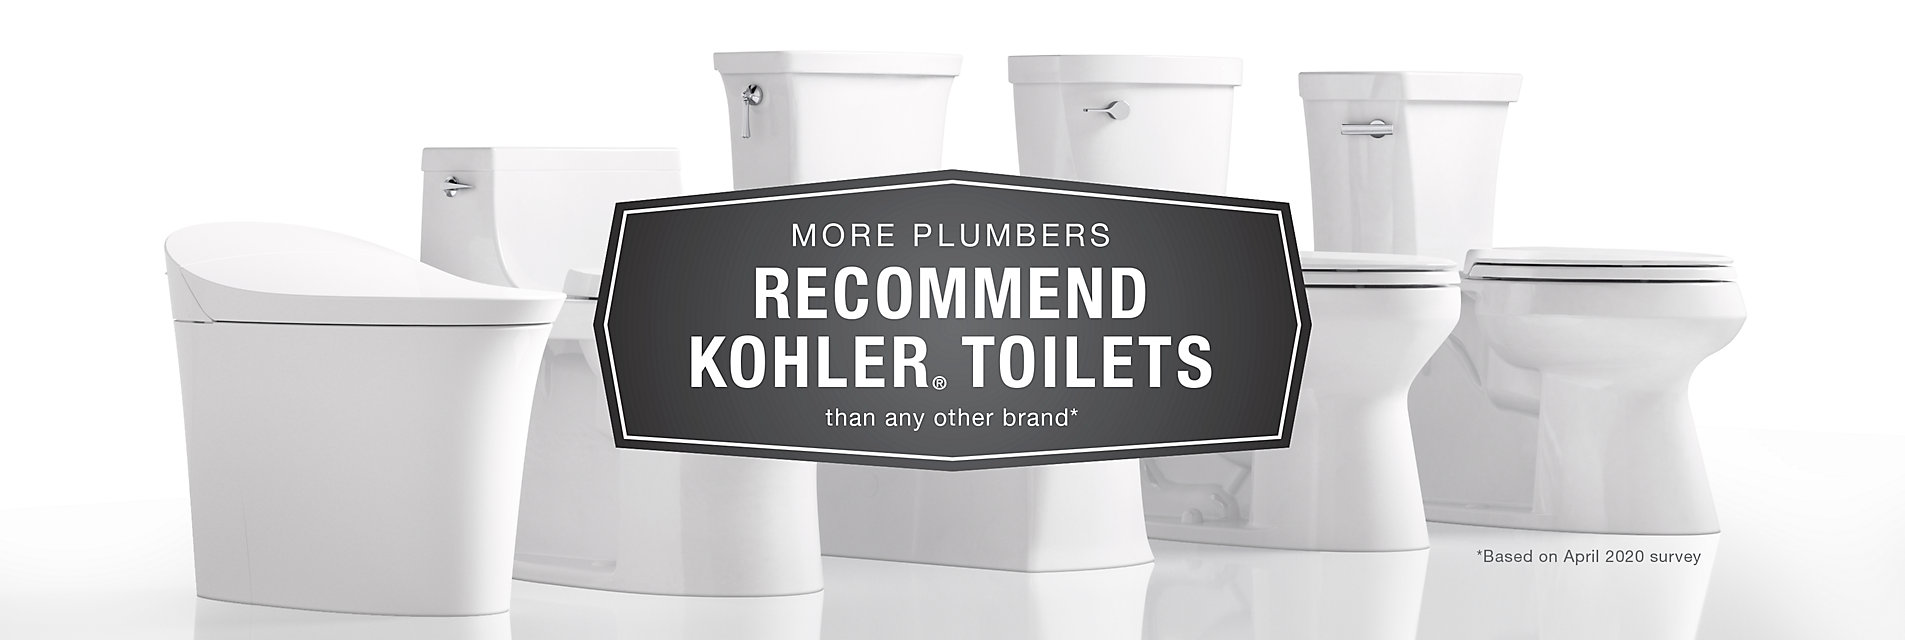 Kohler Toilets Showers Sinks Faucets And More For Bathroom Kitchen